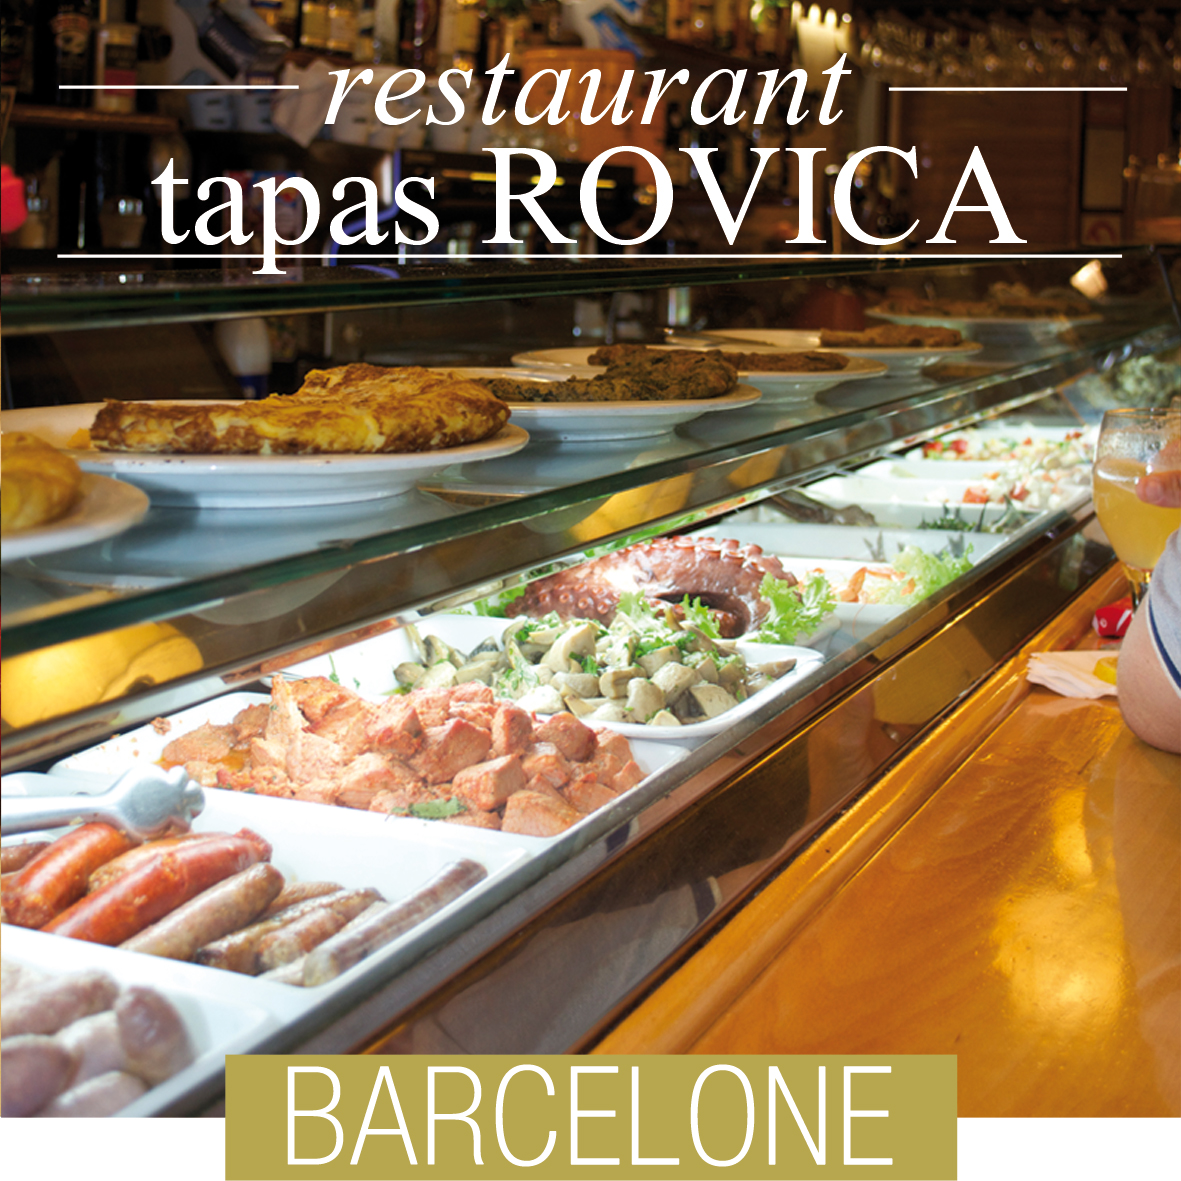 rovica tapas barcelone une pintade montpellier. Black Bedroom Furniture Sets. Home Design Ideas